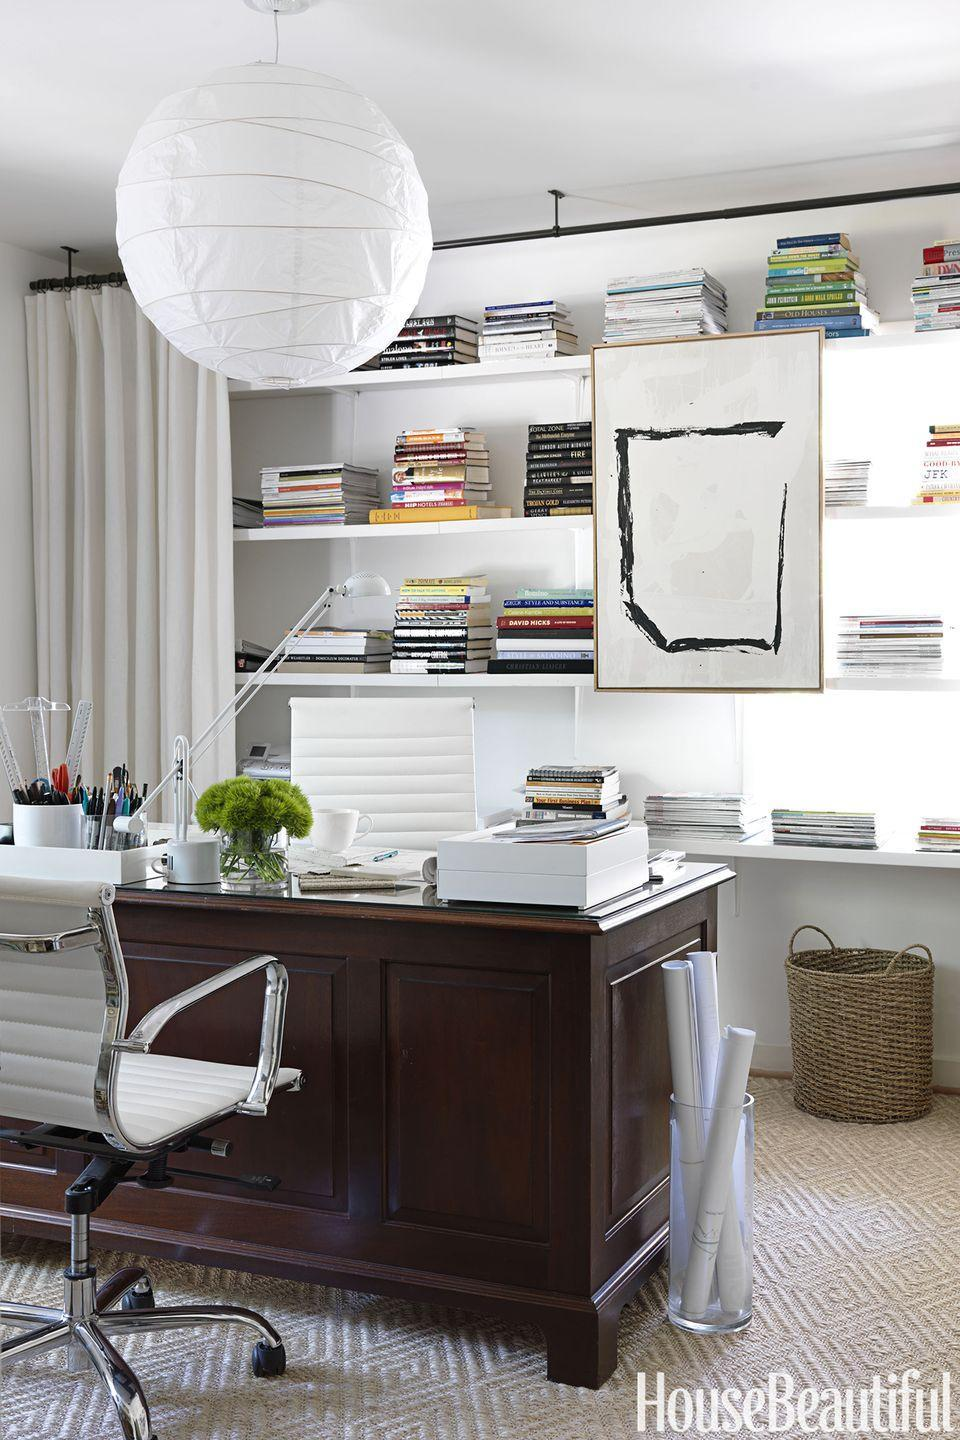 """<p>If your clutter feeds your creativity, you don't have to get rid of it, you just need to conceal it smartly. In a<a href=""""https://www.housebeautiful.com/design-inspiration/home-makeovers/tips/g960/modern-home-decorating-ideas-1010/"""" rel=""""nofollow noopener"""" target=""""_blank"""" data-ylk=""""slk:Birmingham, Alabama"""" class=""""link rapid-noclick-resp""""> Birmingham, Alabama</a> office, curtains soften the room and hide everyday office papers and books that are stacked up on the shelves.</p>"""